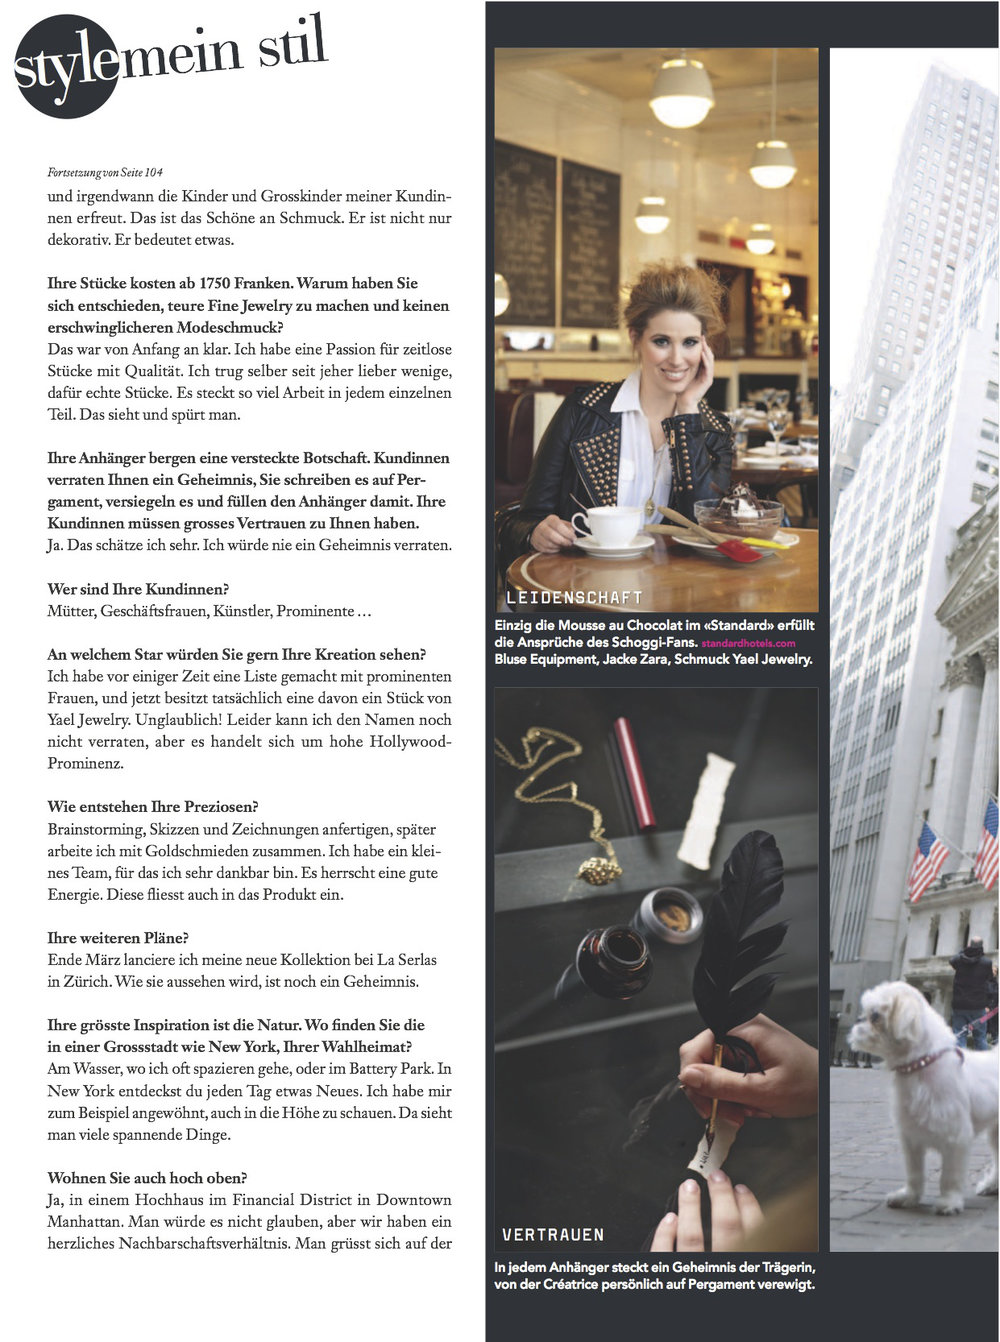 si-style-page-3.jpg